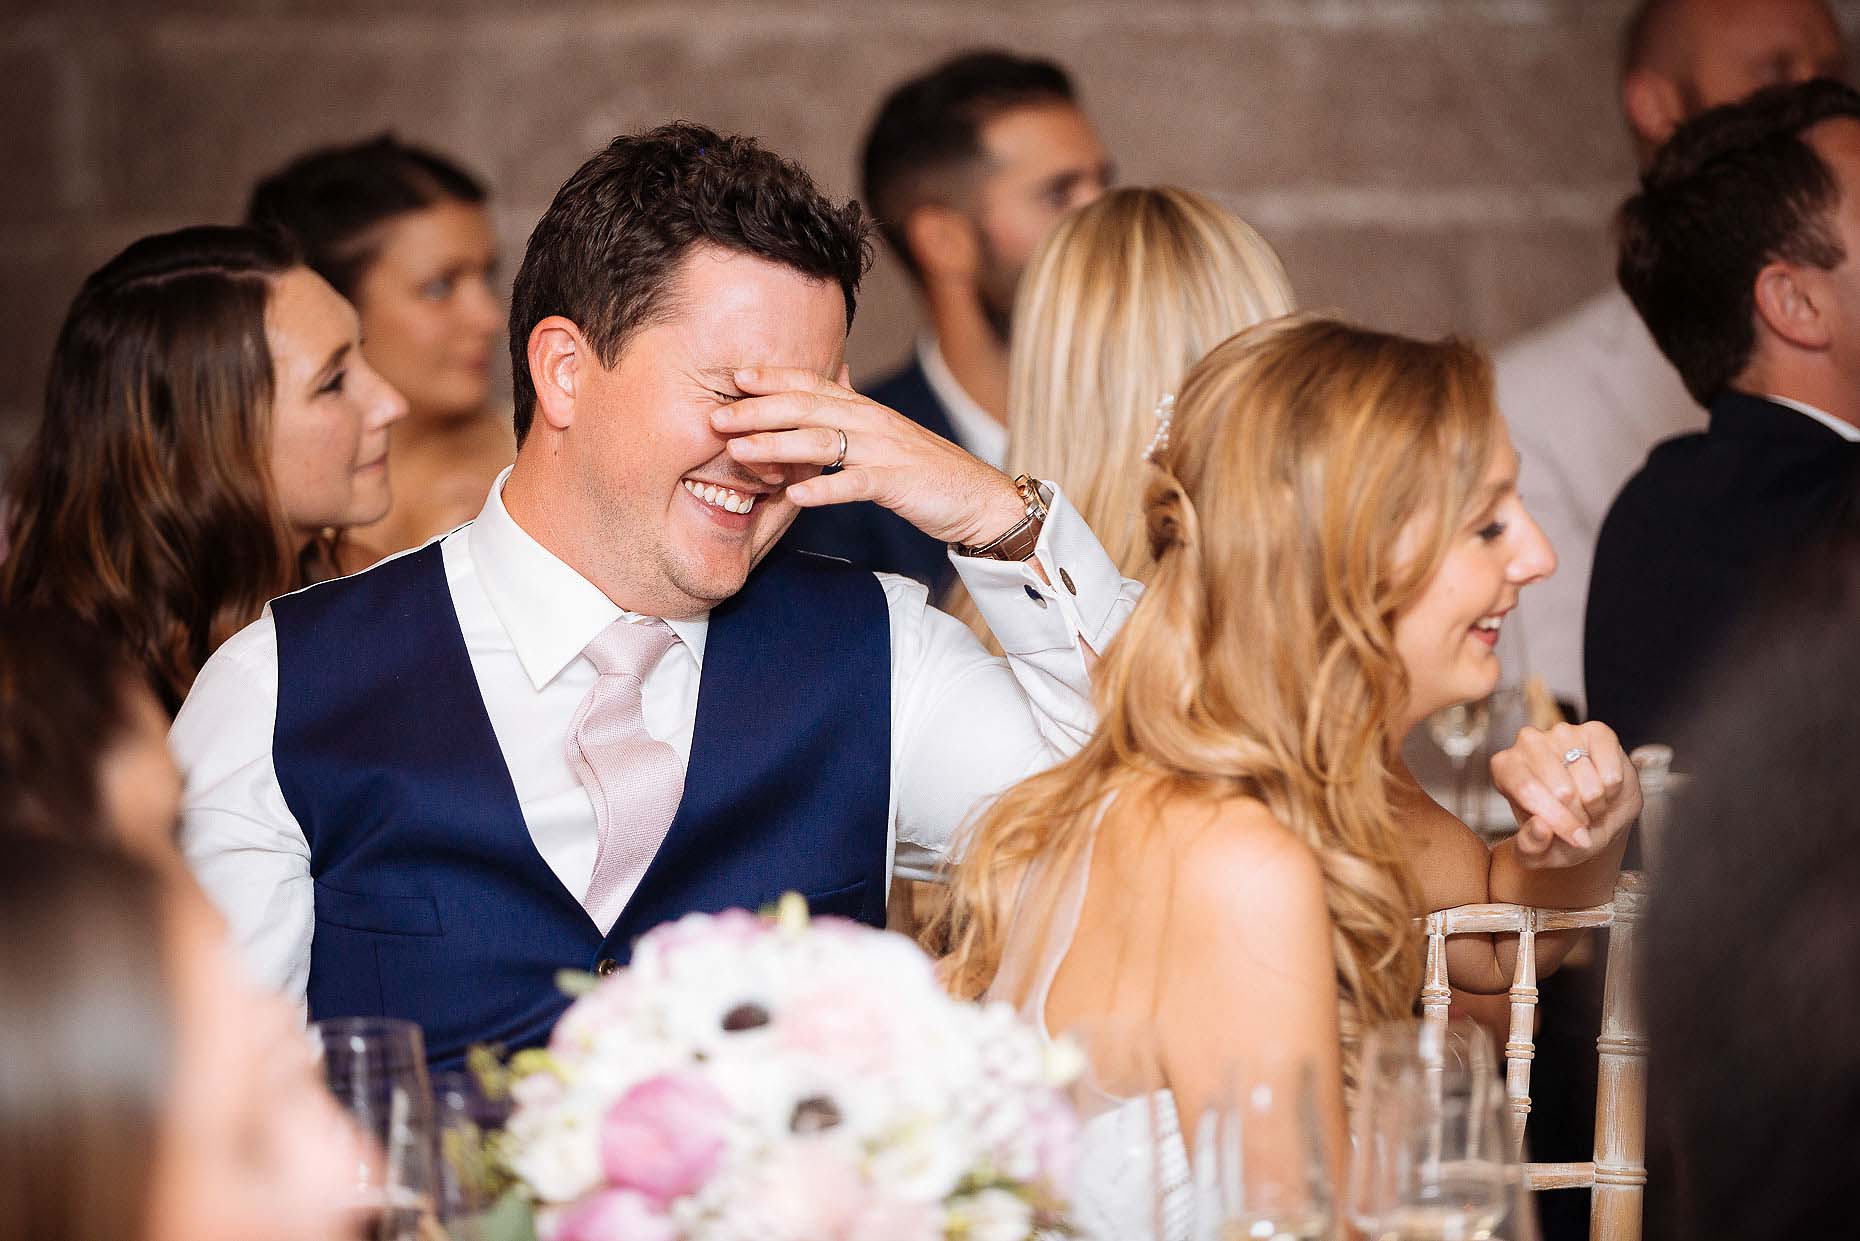 wedding-best-mans-speech-groom-cringing-laughter-21